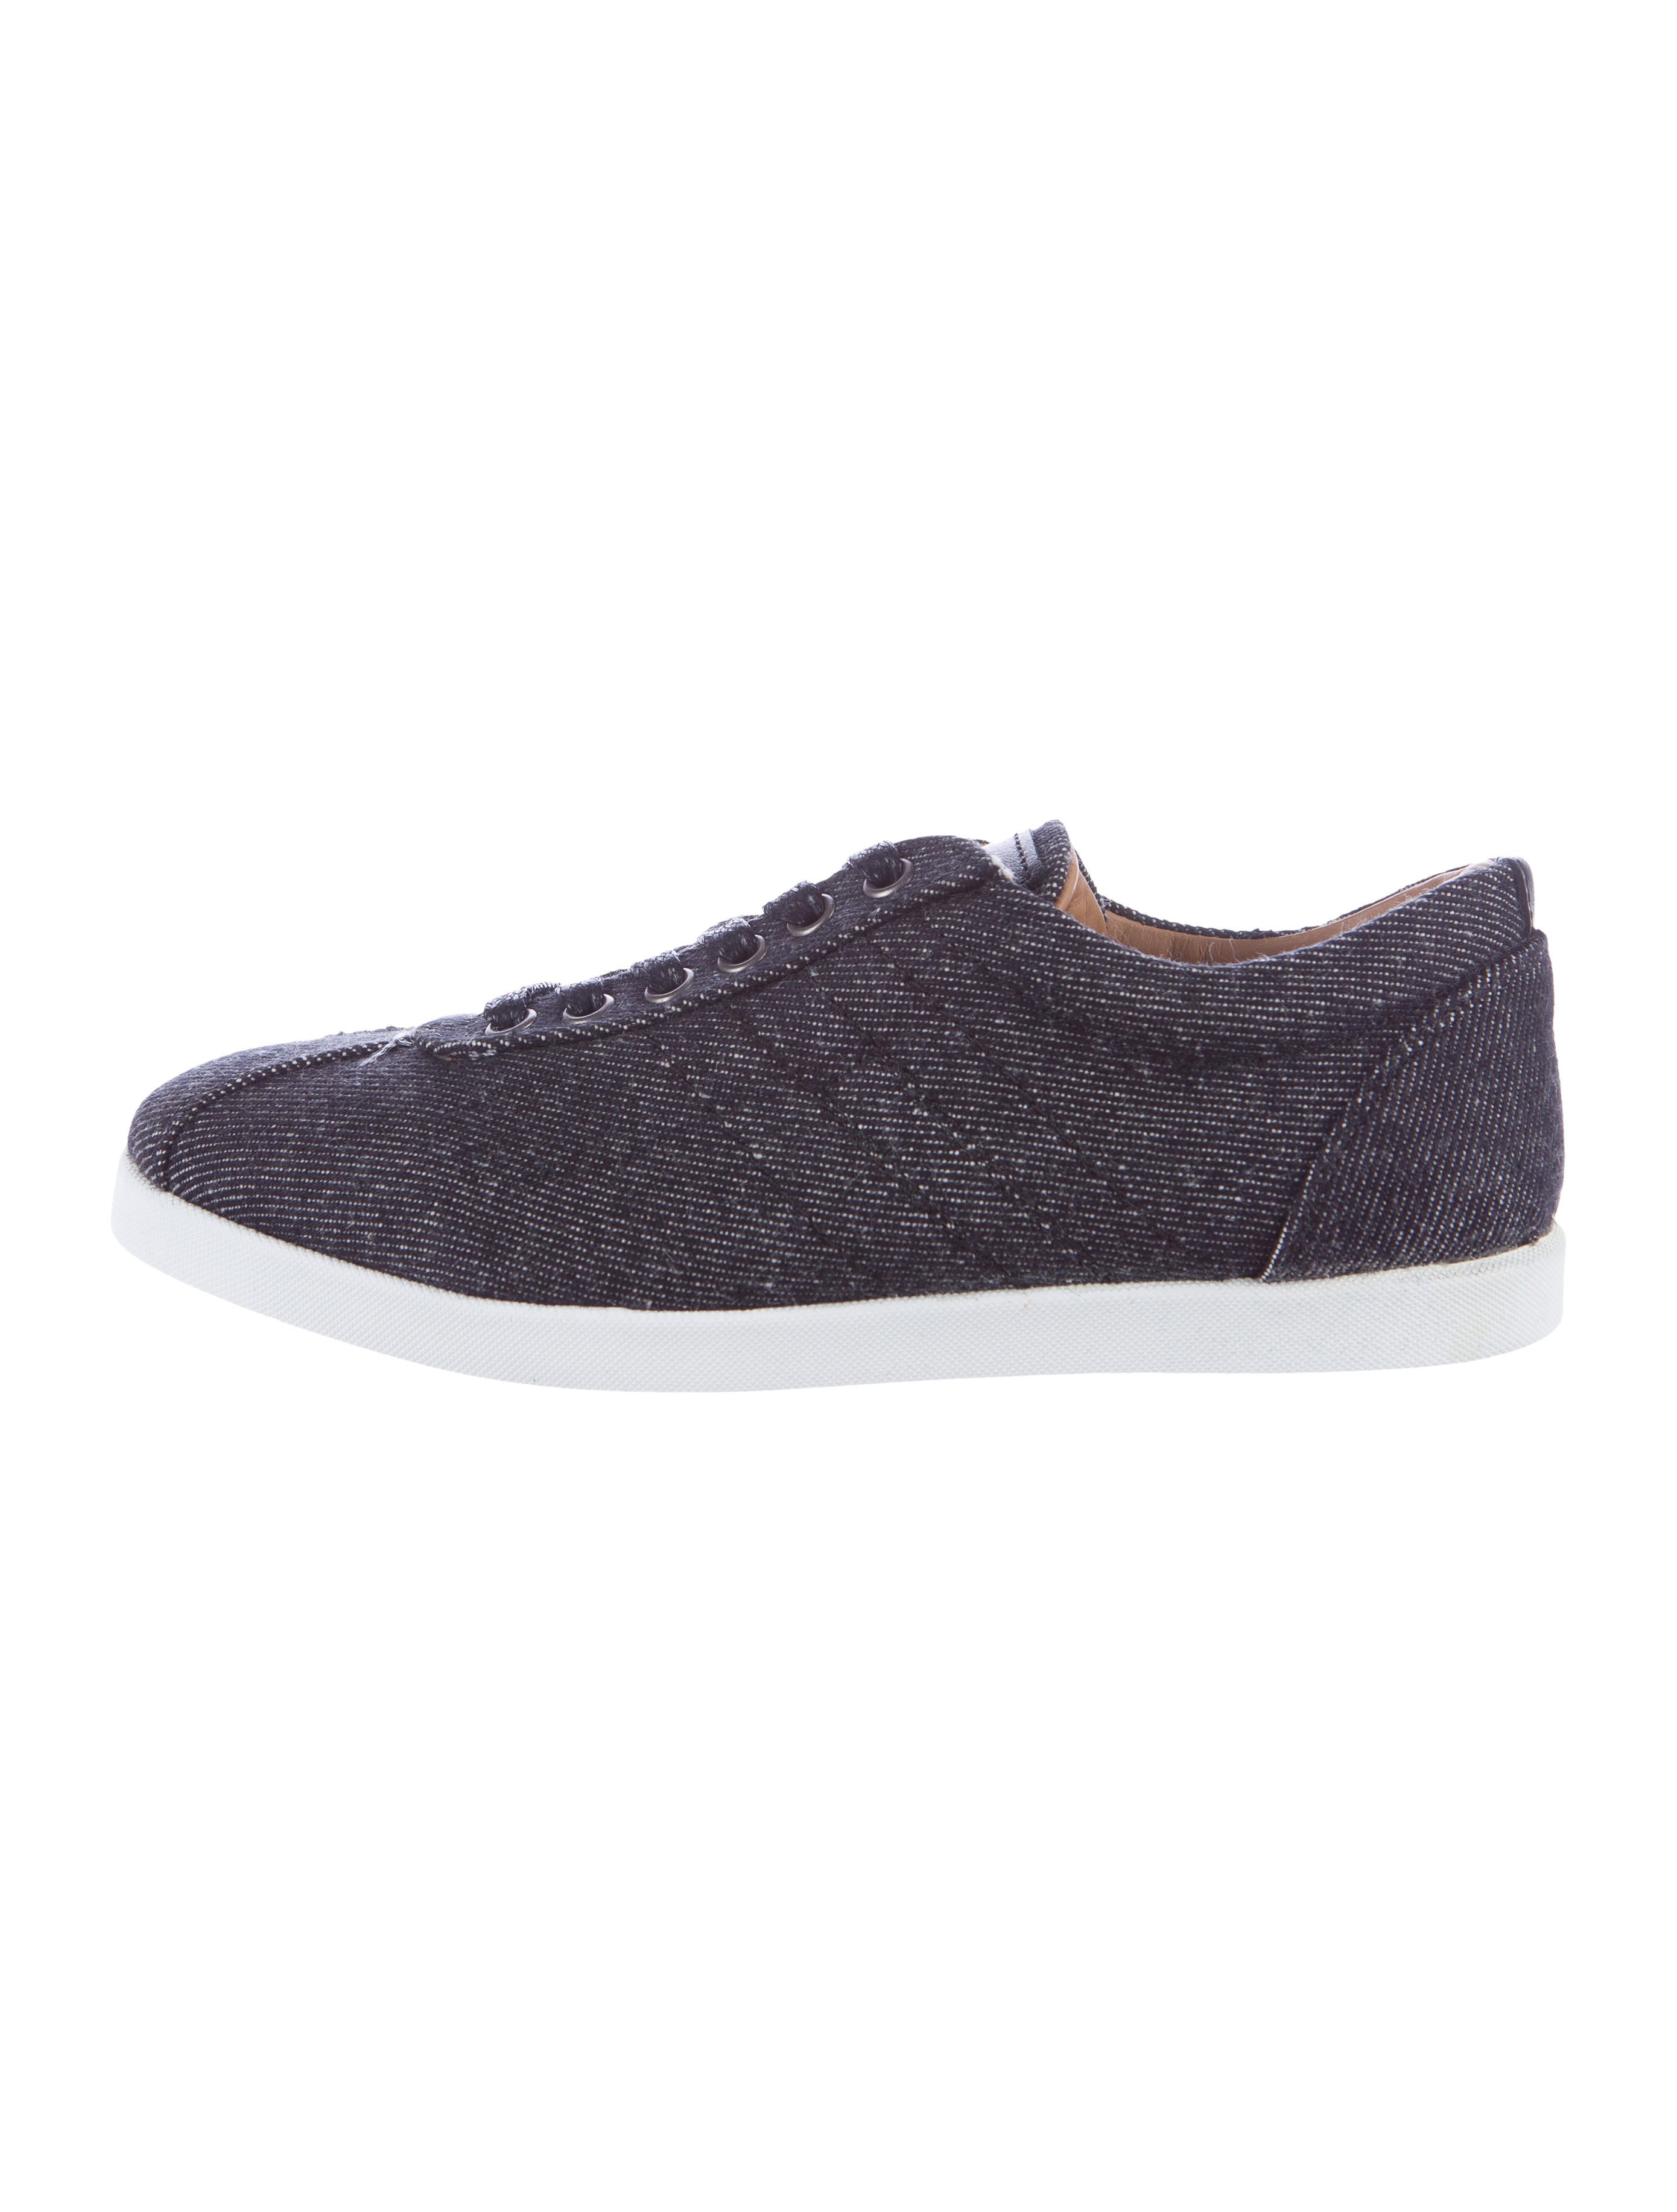 buy cheap order ATM Bleecker Denim Sneakers cheap 2015 new cheap shop offer extremely sale online clearance countdown package 2kLMF1N